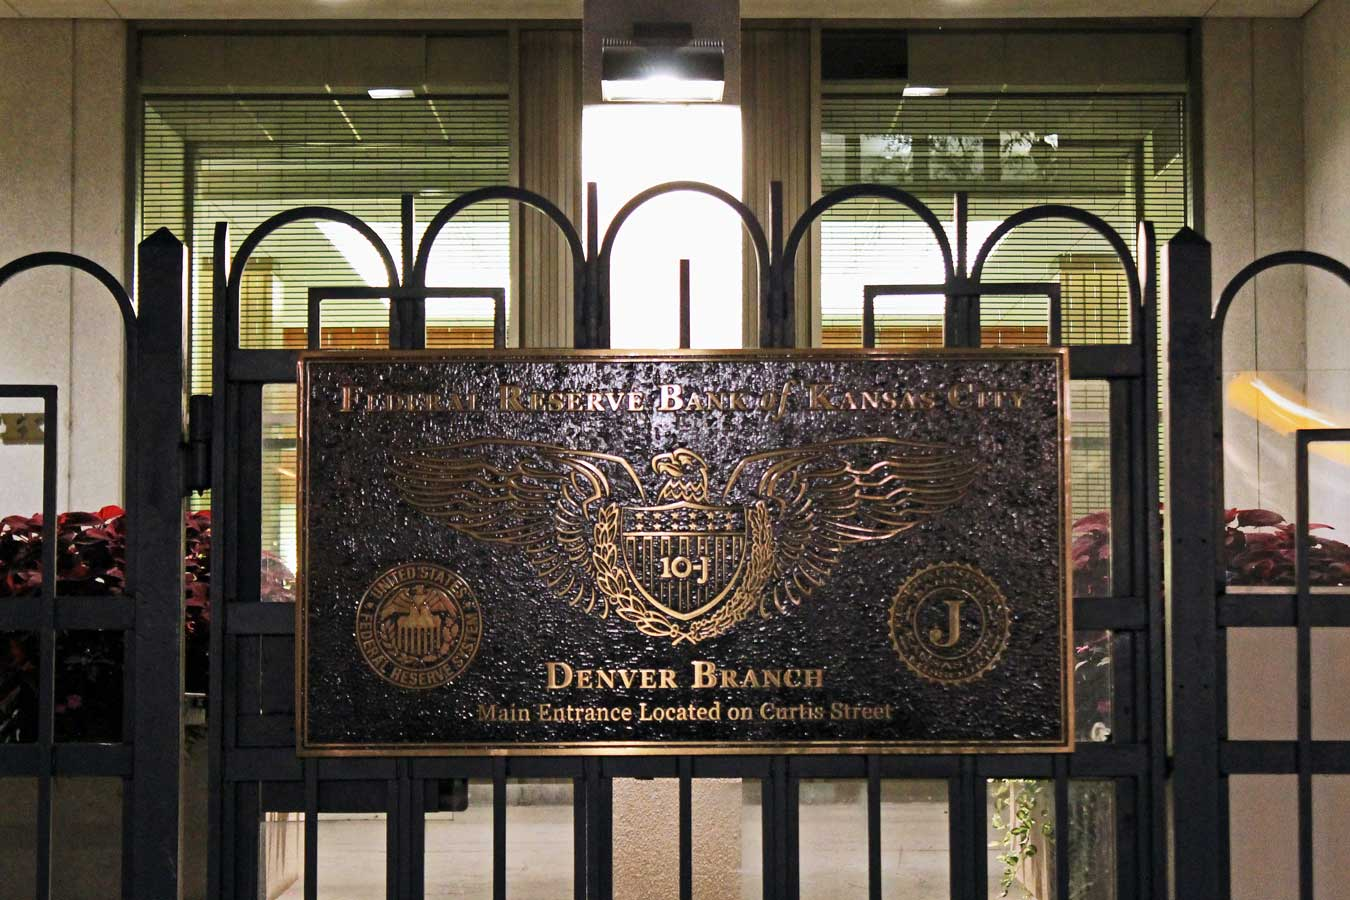 Denver Federal Reserve Bank Tours